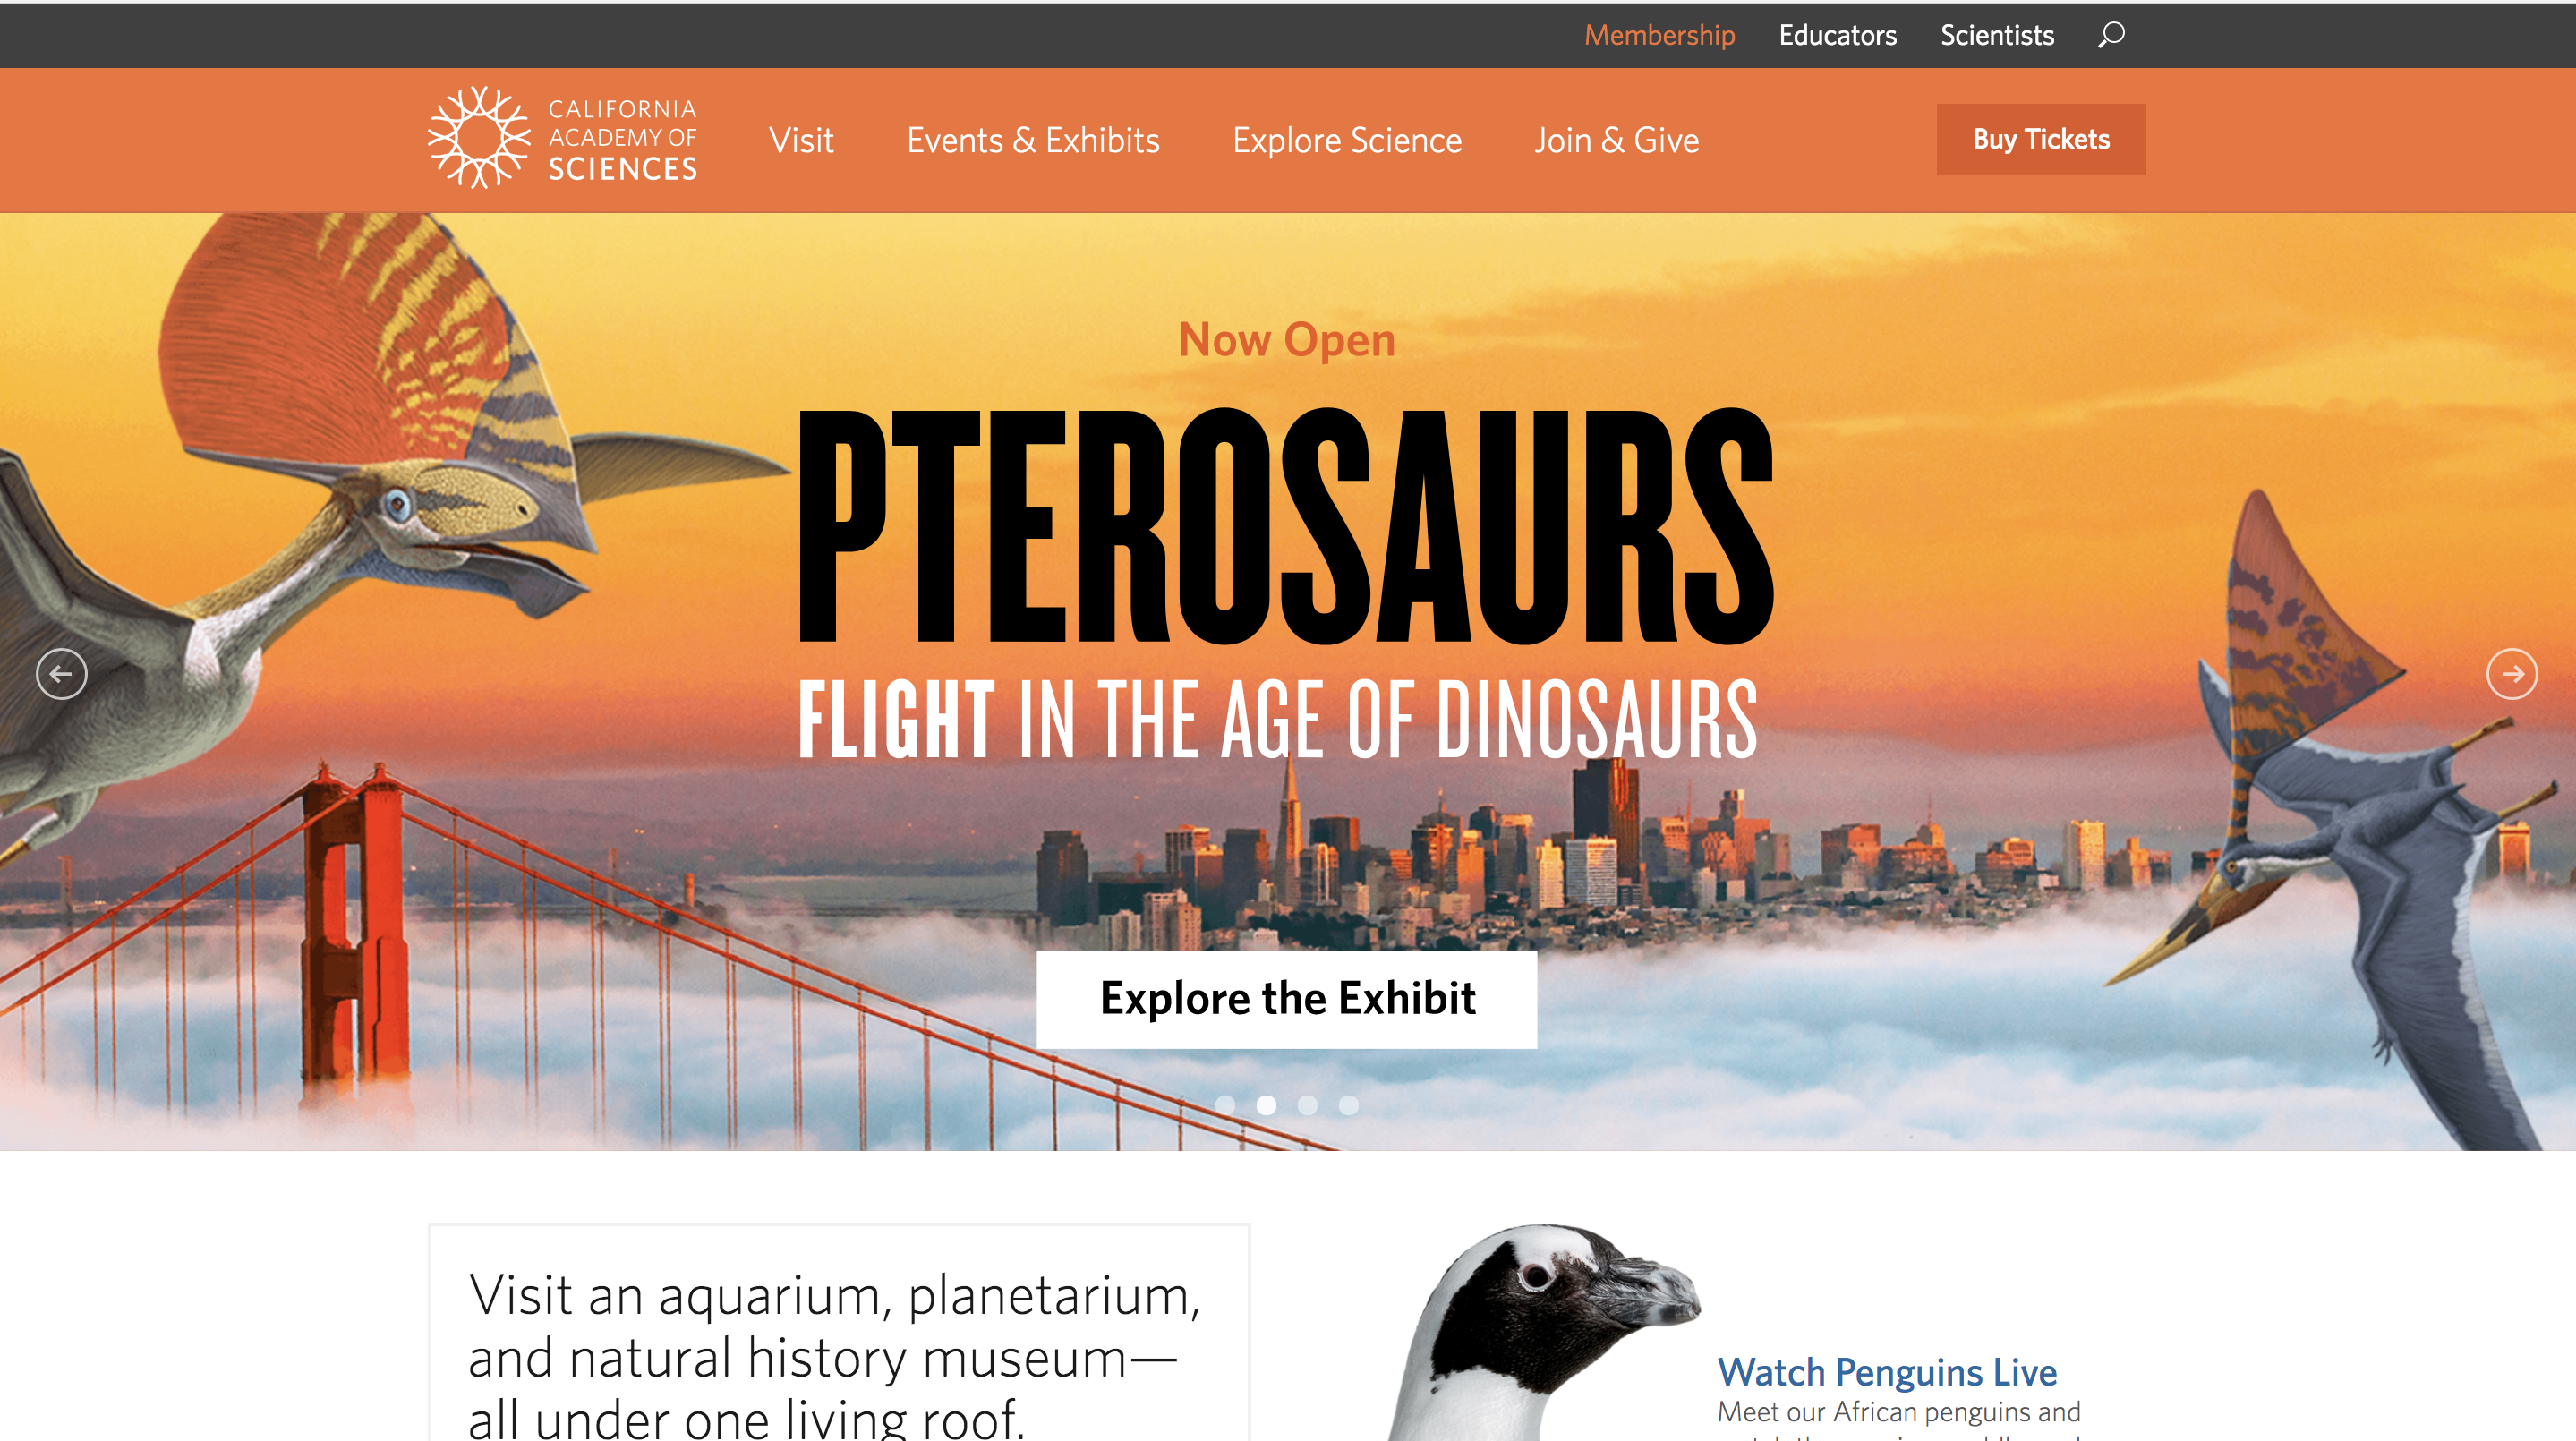 California Academy of Sciences Website